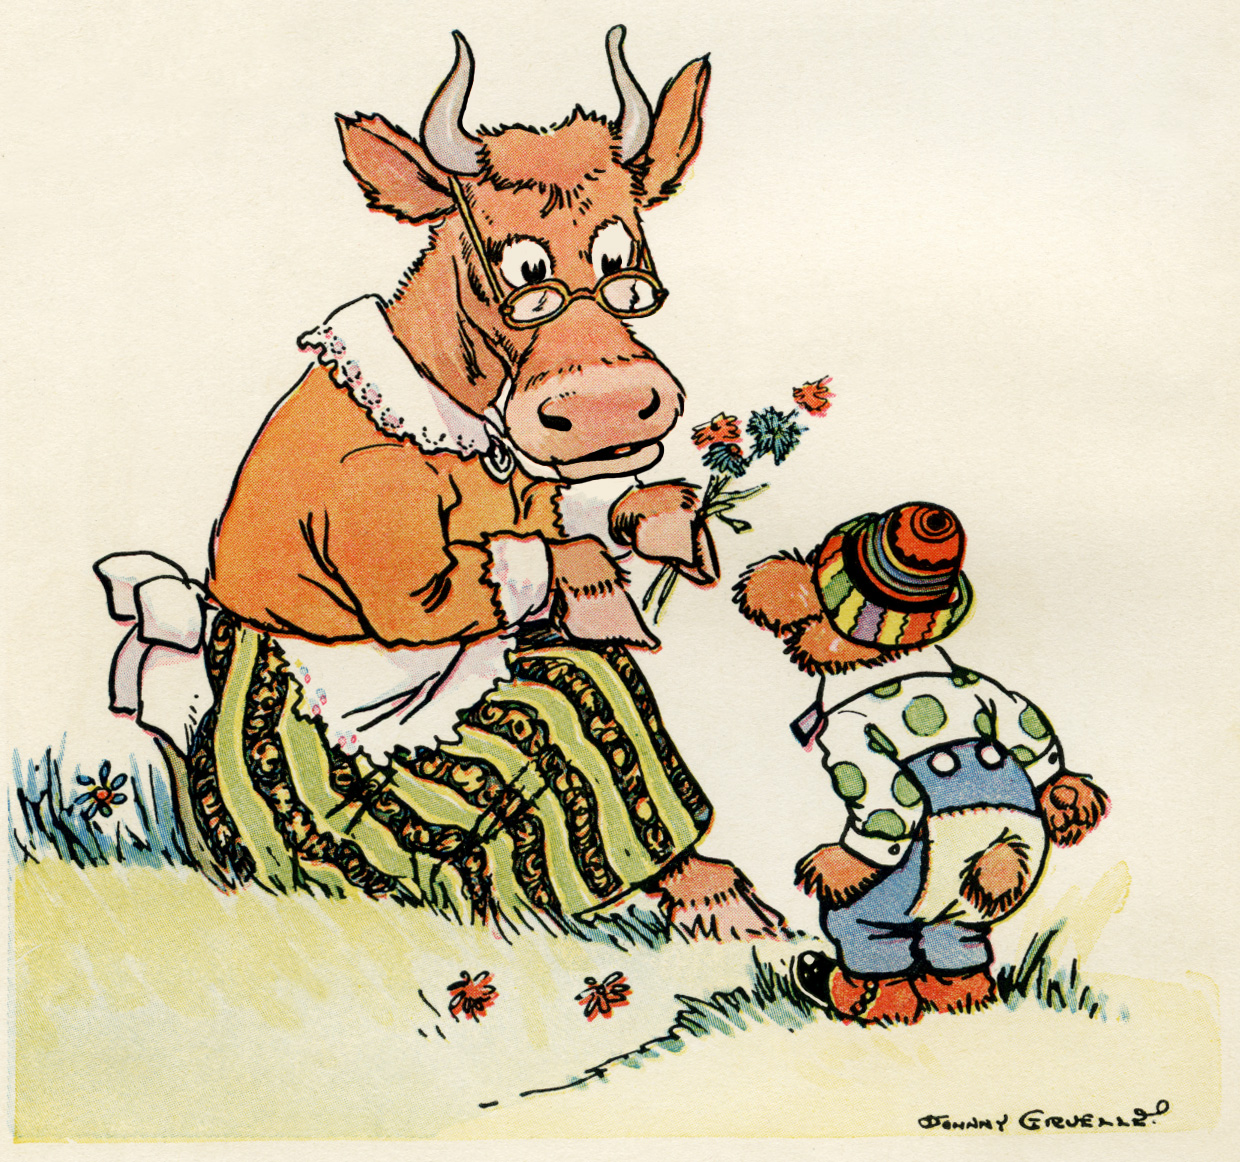 johnny gruelle illustration, vintage storybook image, cartoon bear and cow, little bear illustration, free vintage image, free vintage clipart, vintage storybook bear, vintage storybook image, antique clipart, digital image for graphic design, copyright free image, childrens story picture, 1920 storybook image, the little brown bear, public domain image